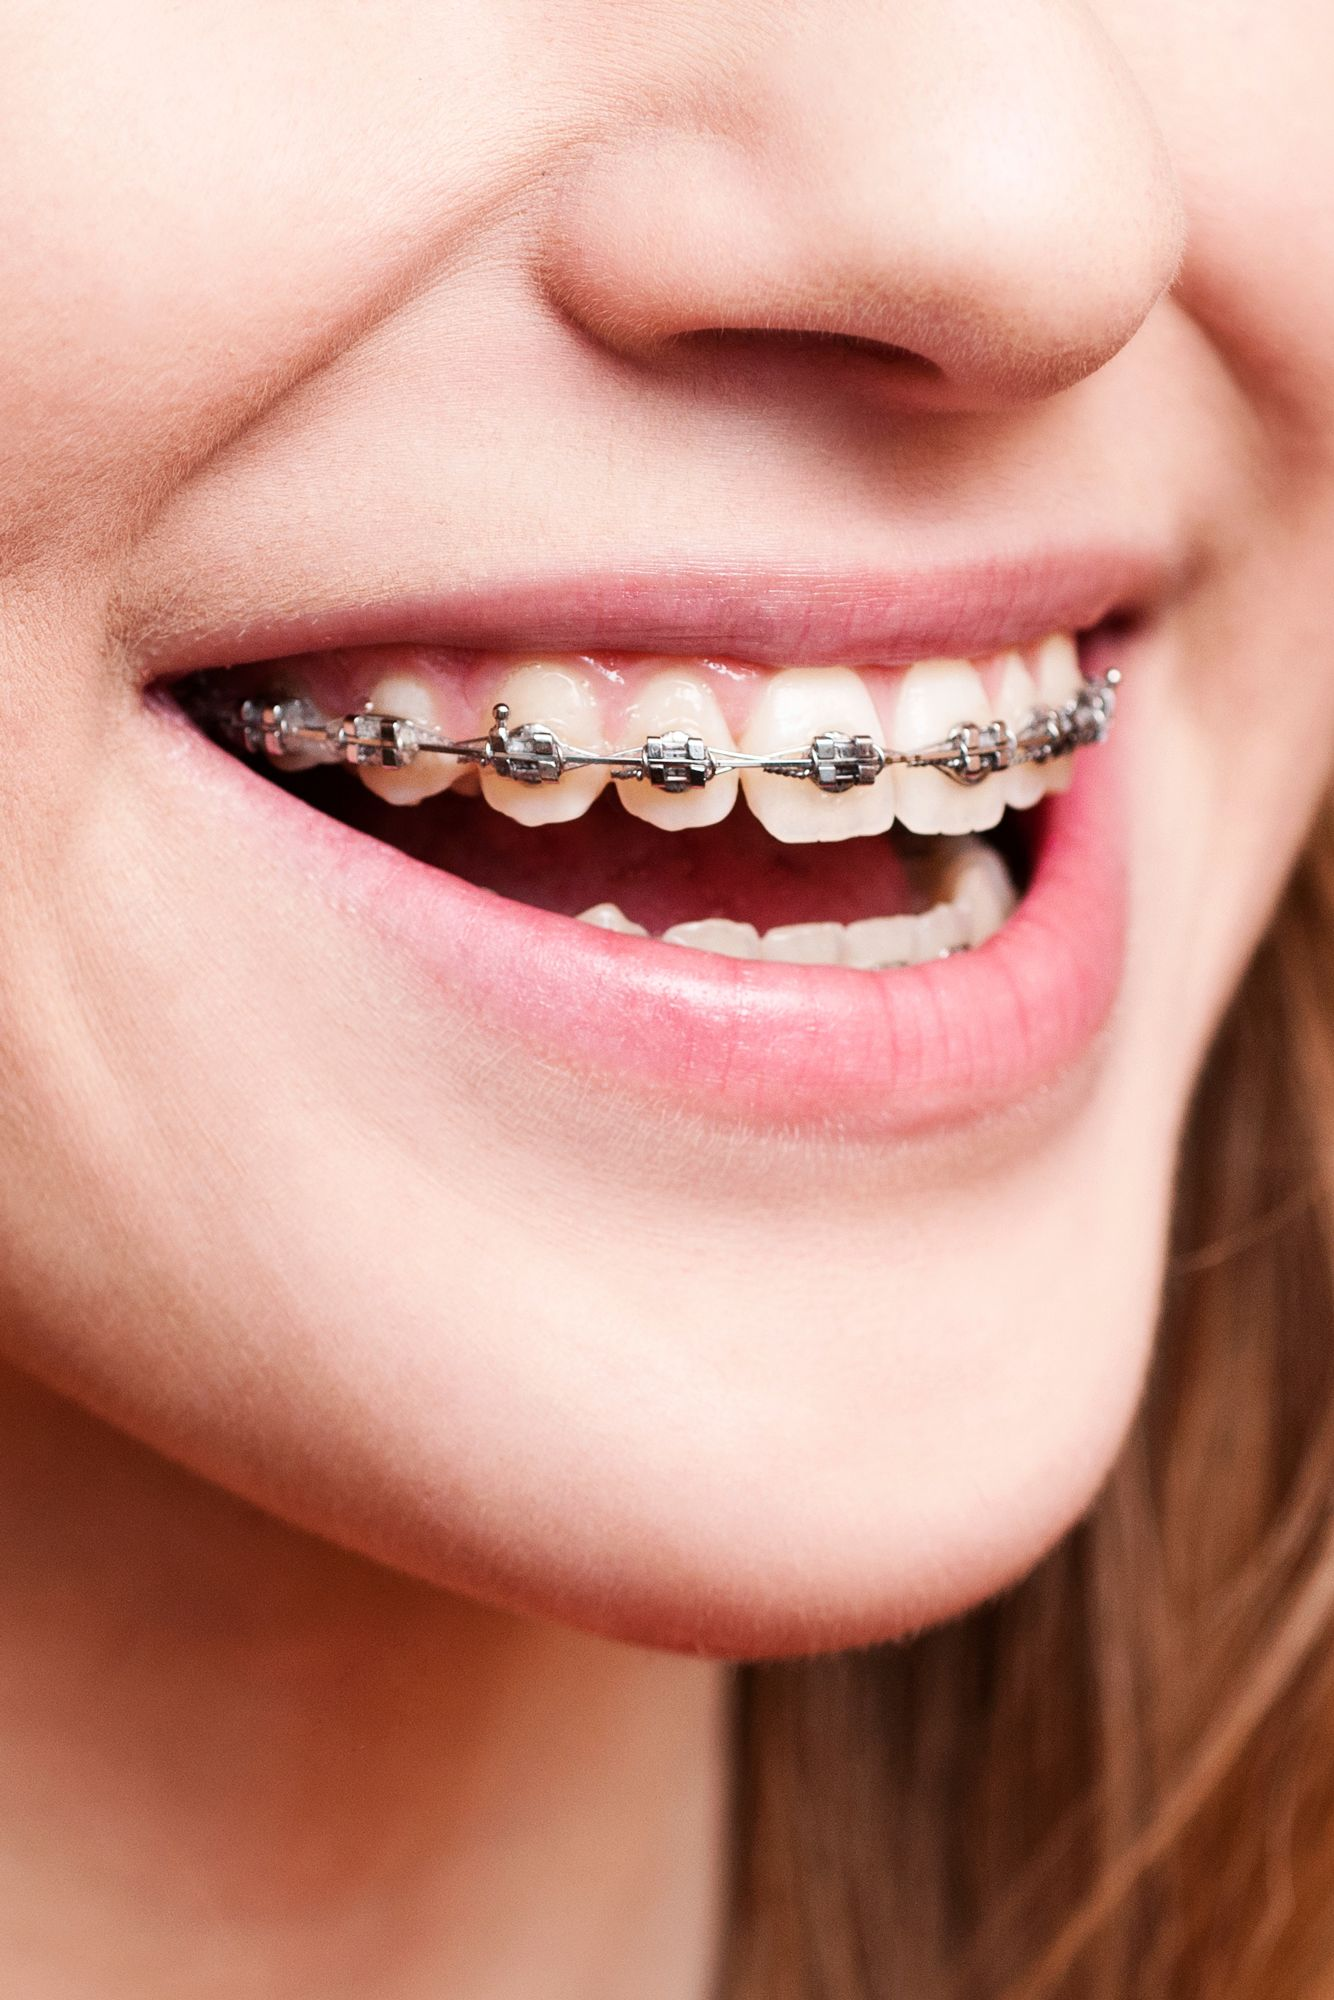 Braces Tightening Side Effects - Philadelphia, PA